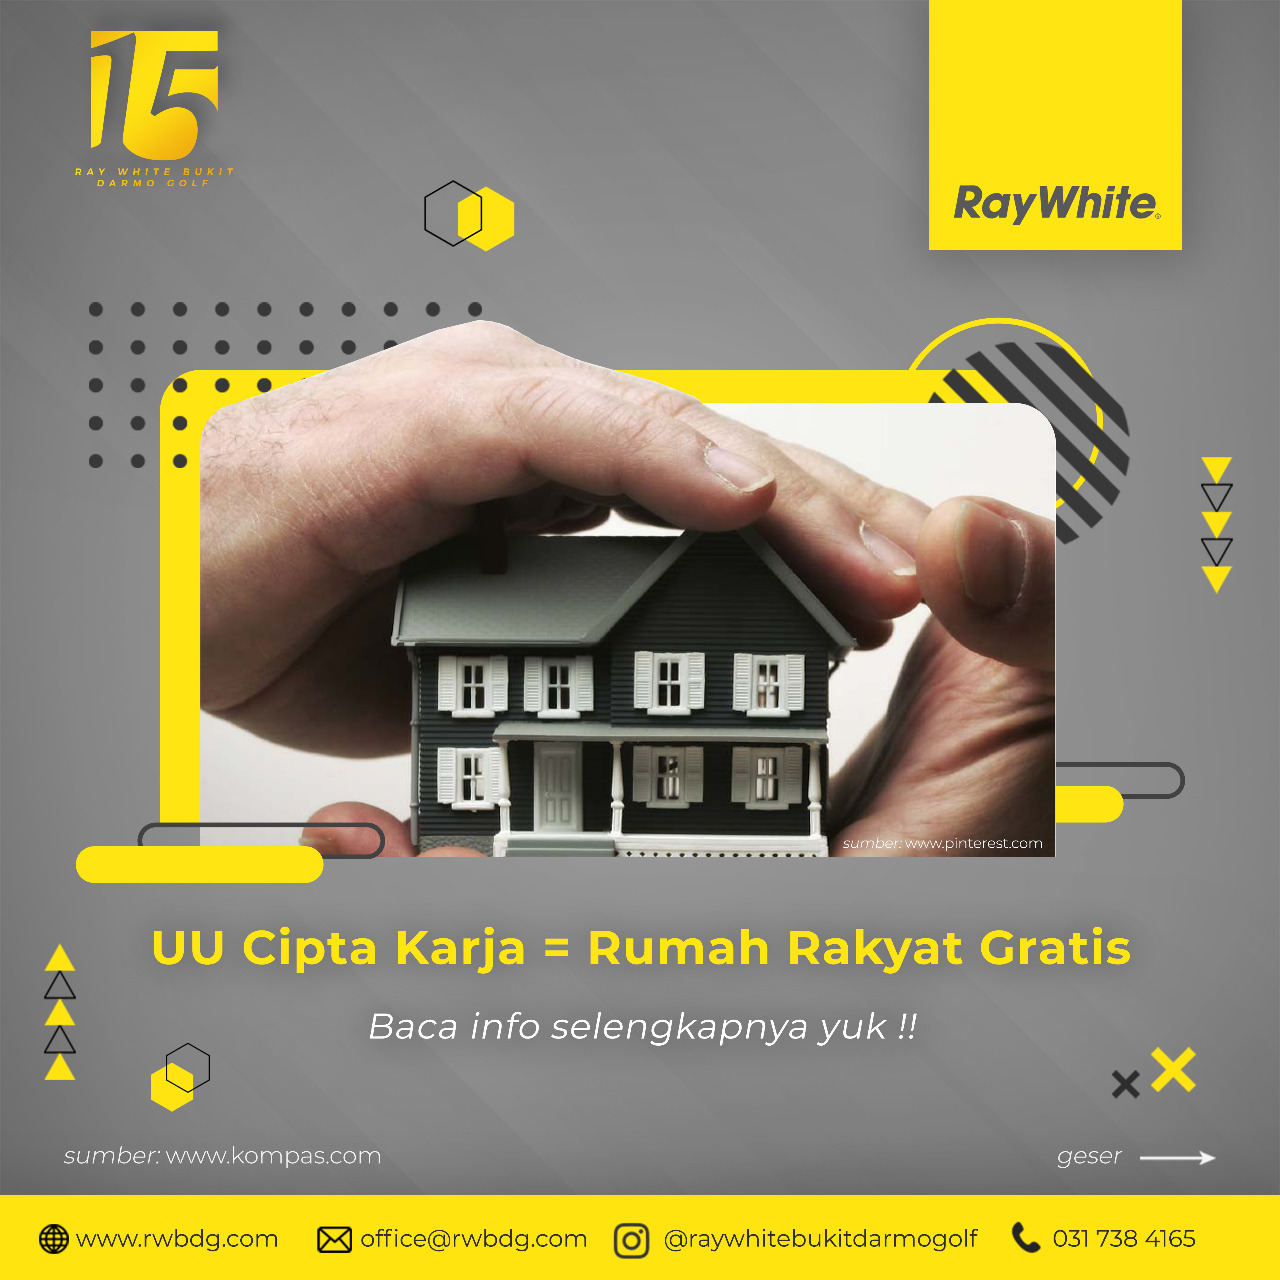 UU Cipta Karja Allows the State to Provide Free People's Homes